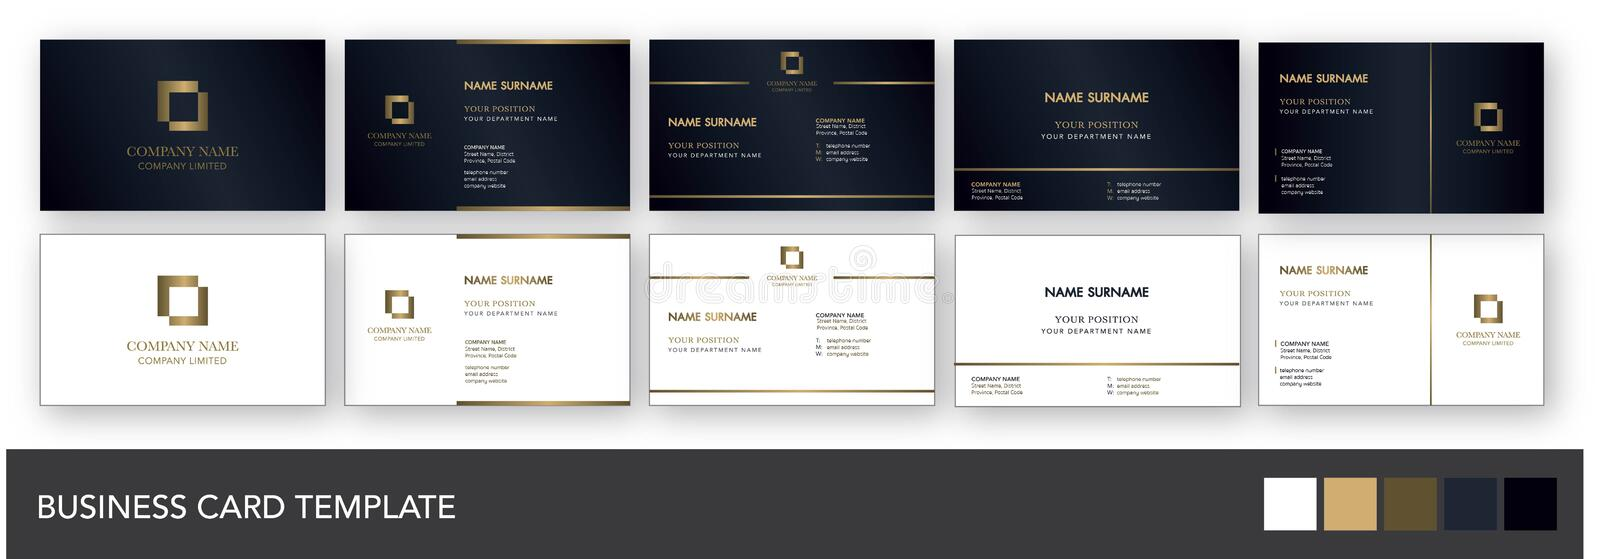 Dark Navy and Gold Business Card Template vector illustration